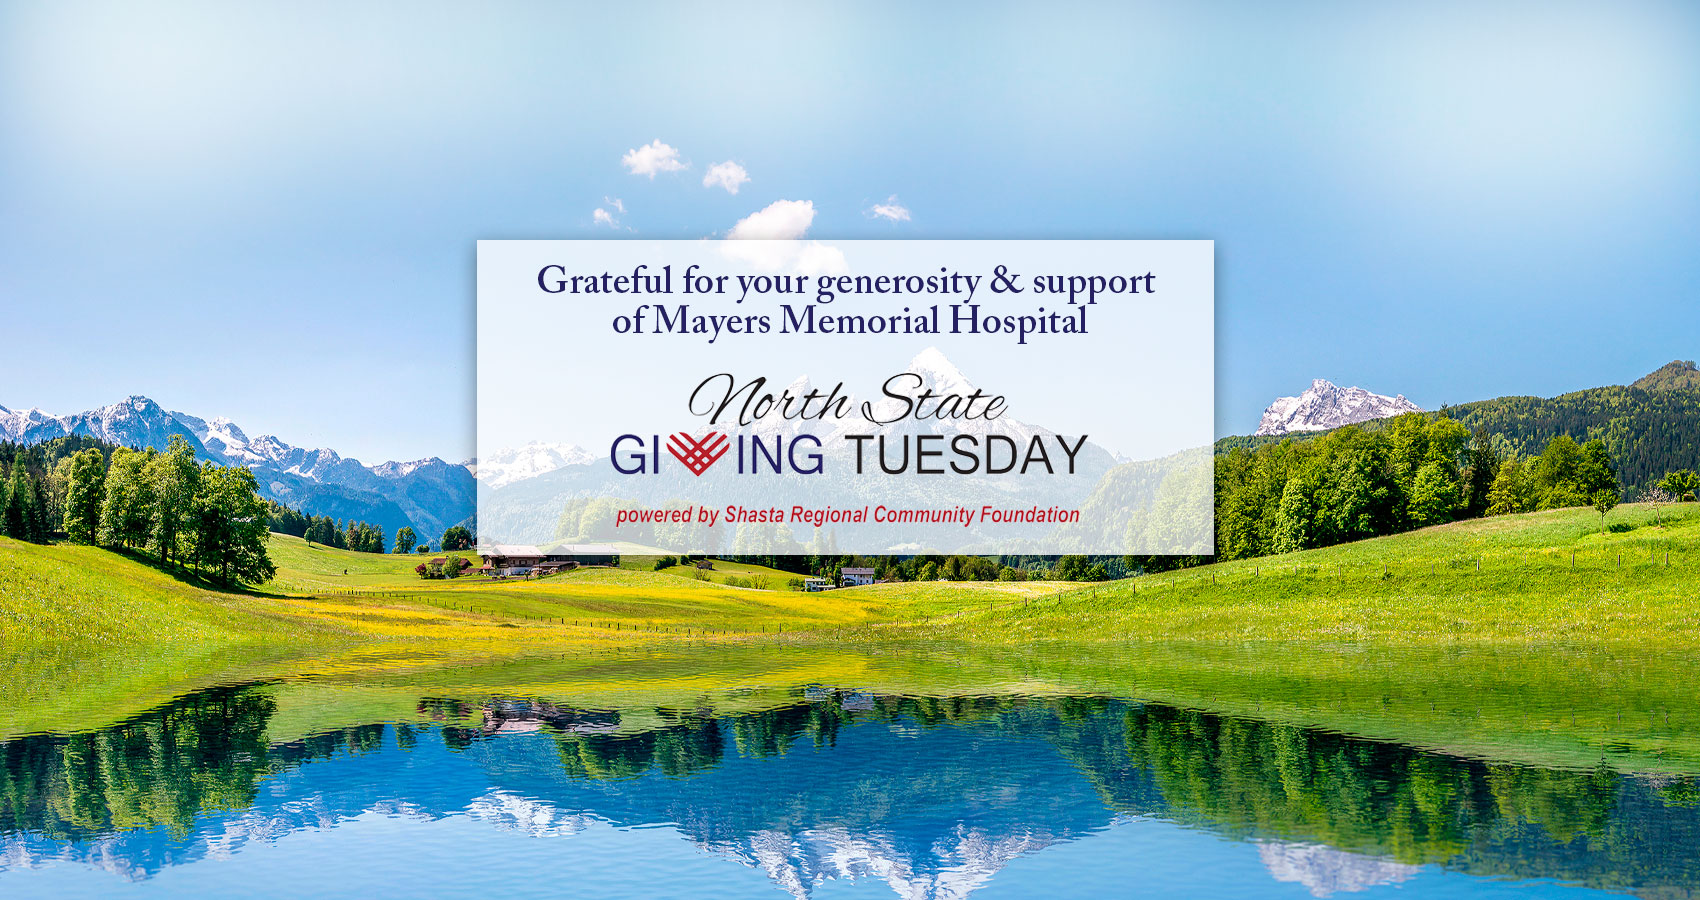 Grateful for your generosity & support of Mayers Memorial Hospital  North State Giving Tuesday, powered by Shasta Regional Community Foundation.